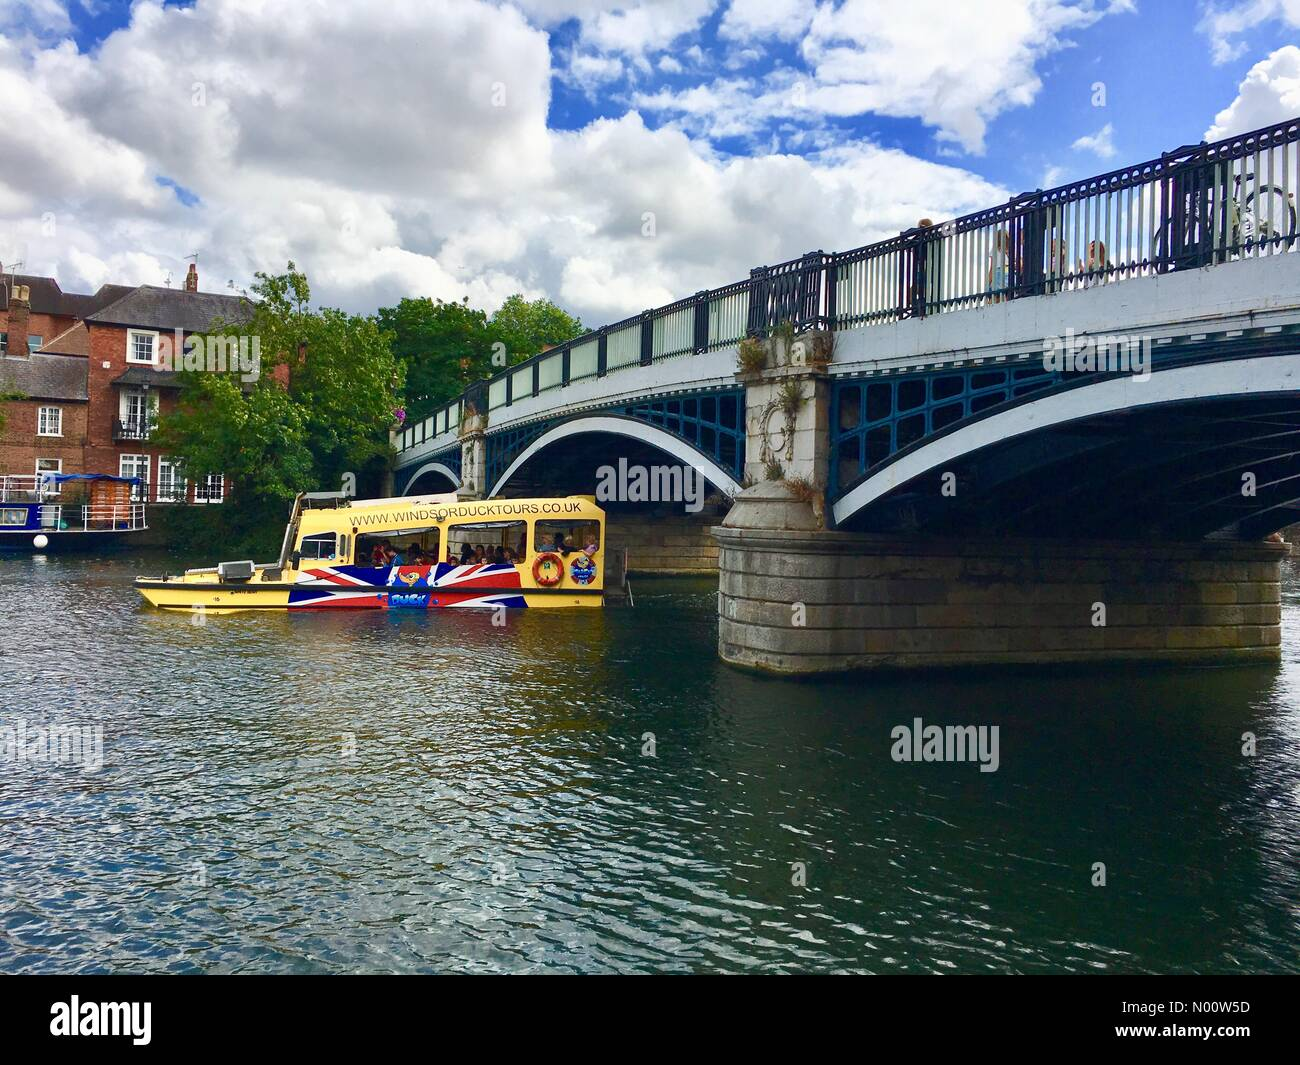 Windsor, UK. 30th July 2018. UK Weather: Partly sunny in Windsor 30 July 2018 Windsor, England UK Perfect weather for taking a Duck Boat ride under Windsor Bridge on the River Thames. Credit: Lisa Werner/StockimoNews/Alamy Live News - Stock Image